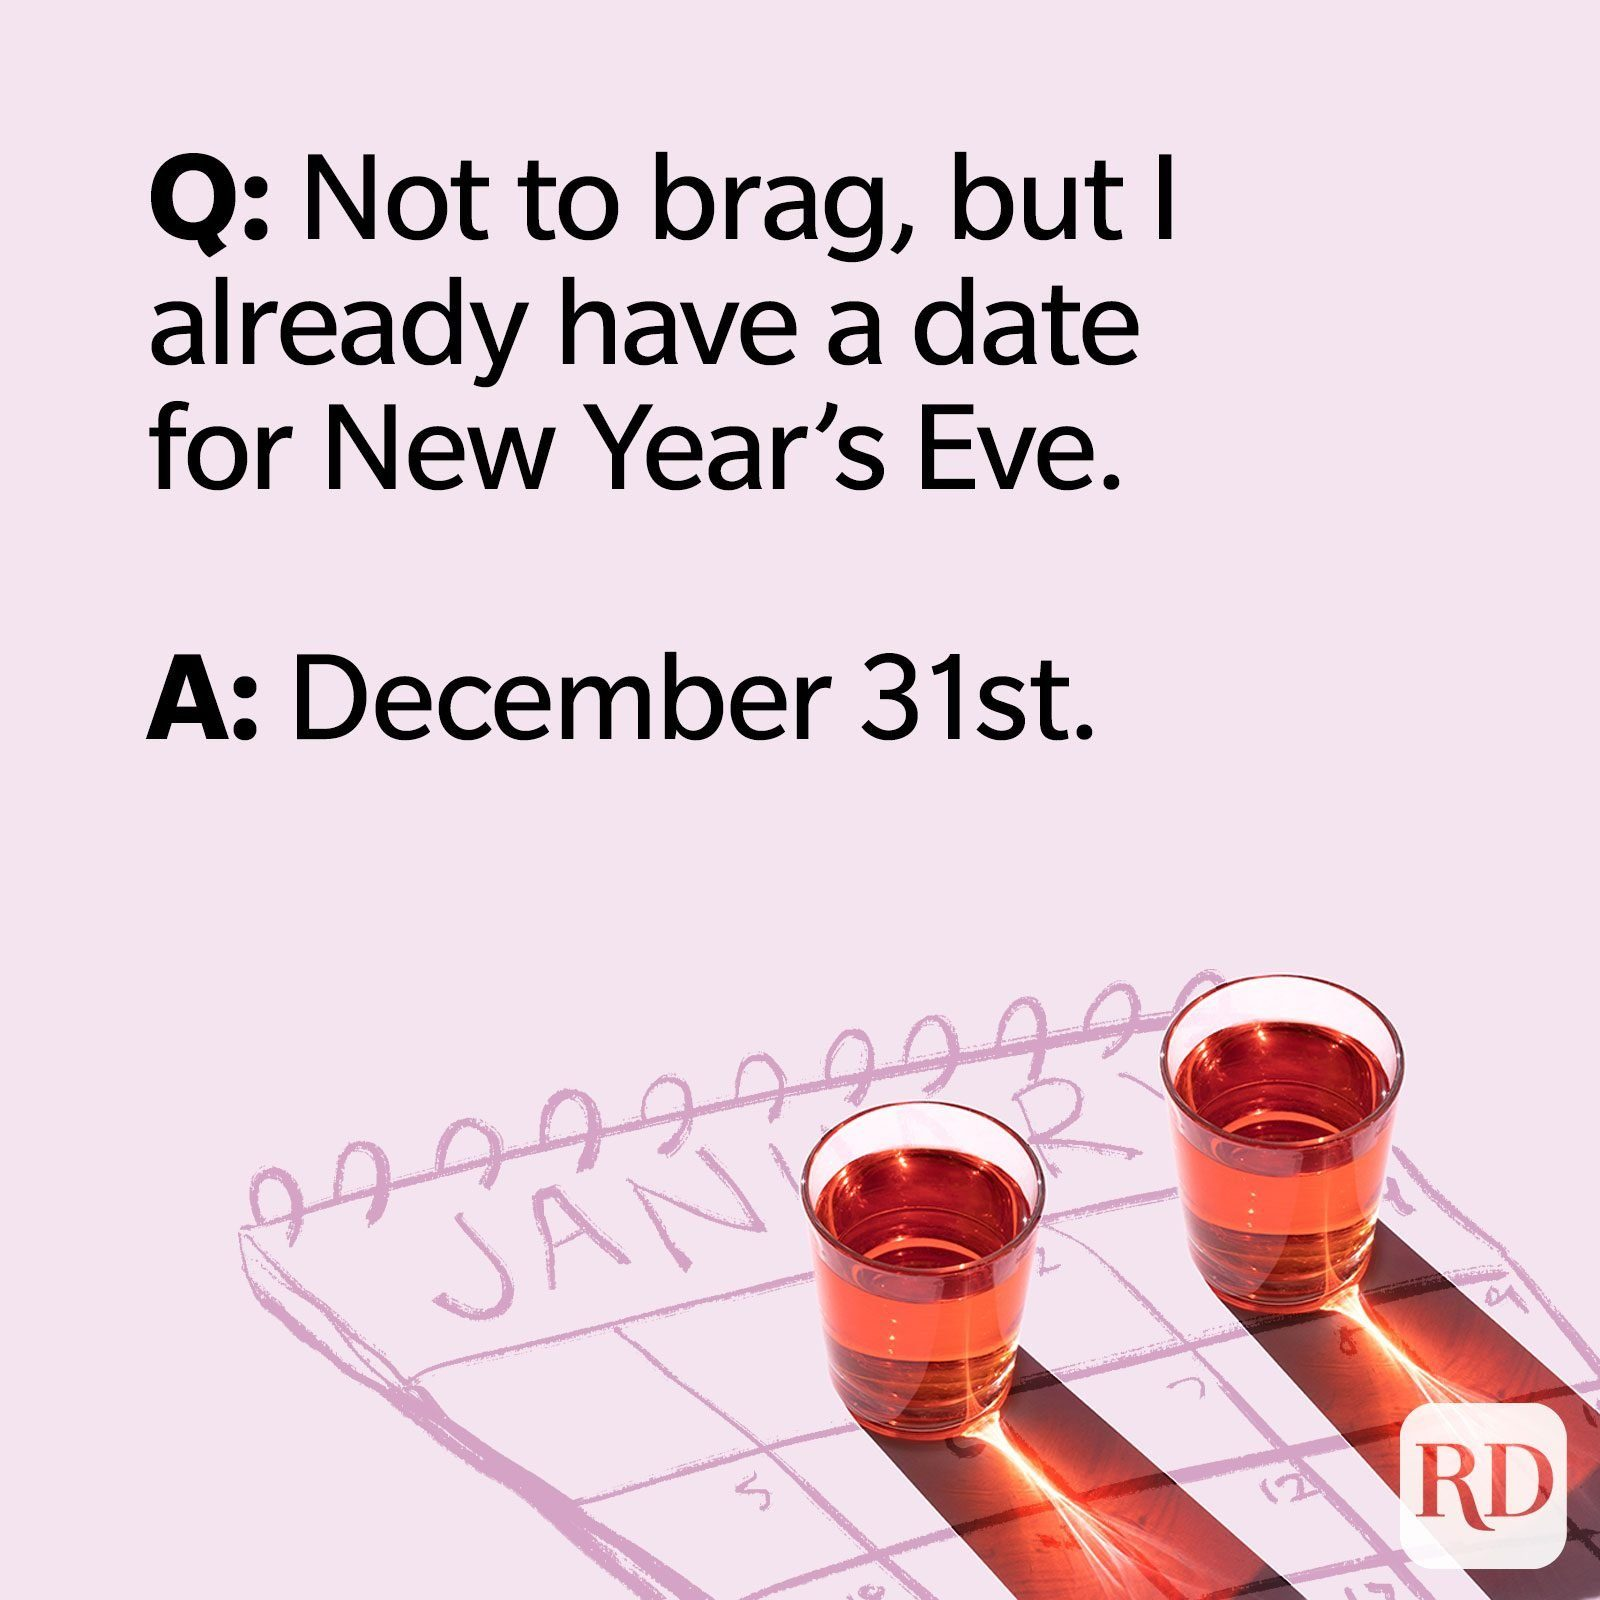 Q: Not to brag, but I already have a date for New Year's Eve. A: December 31st.